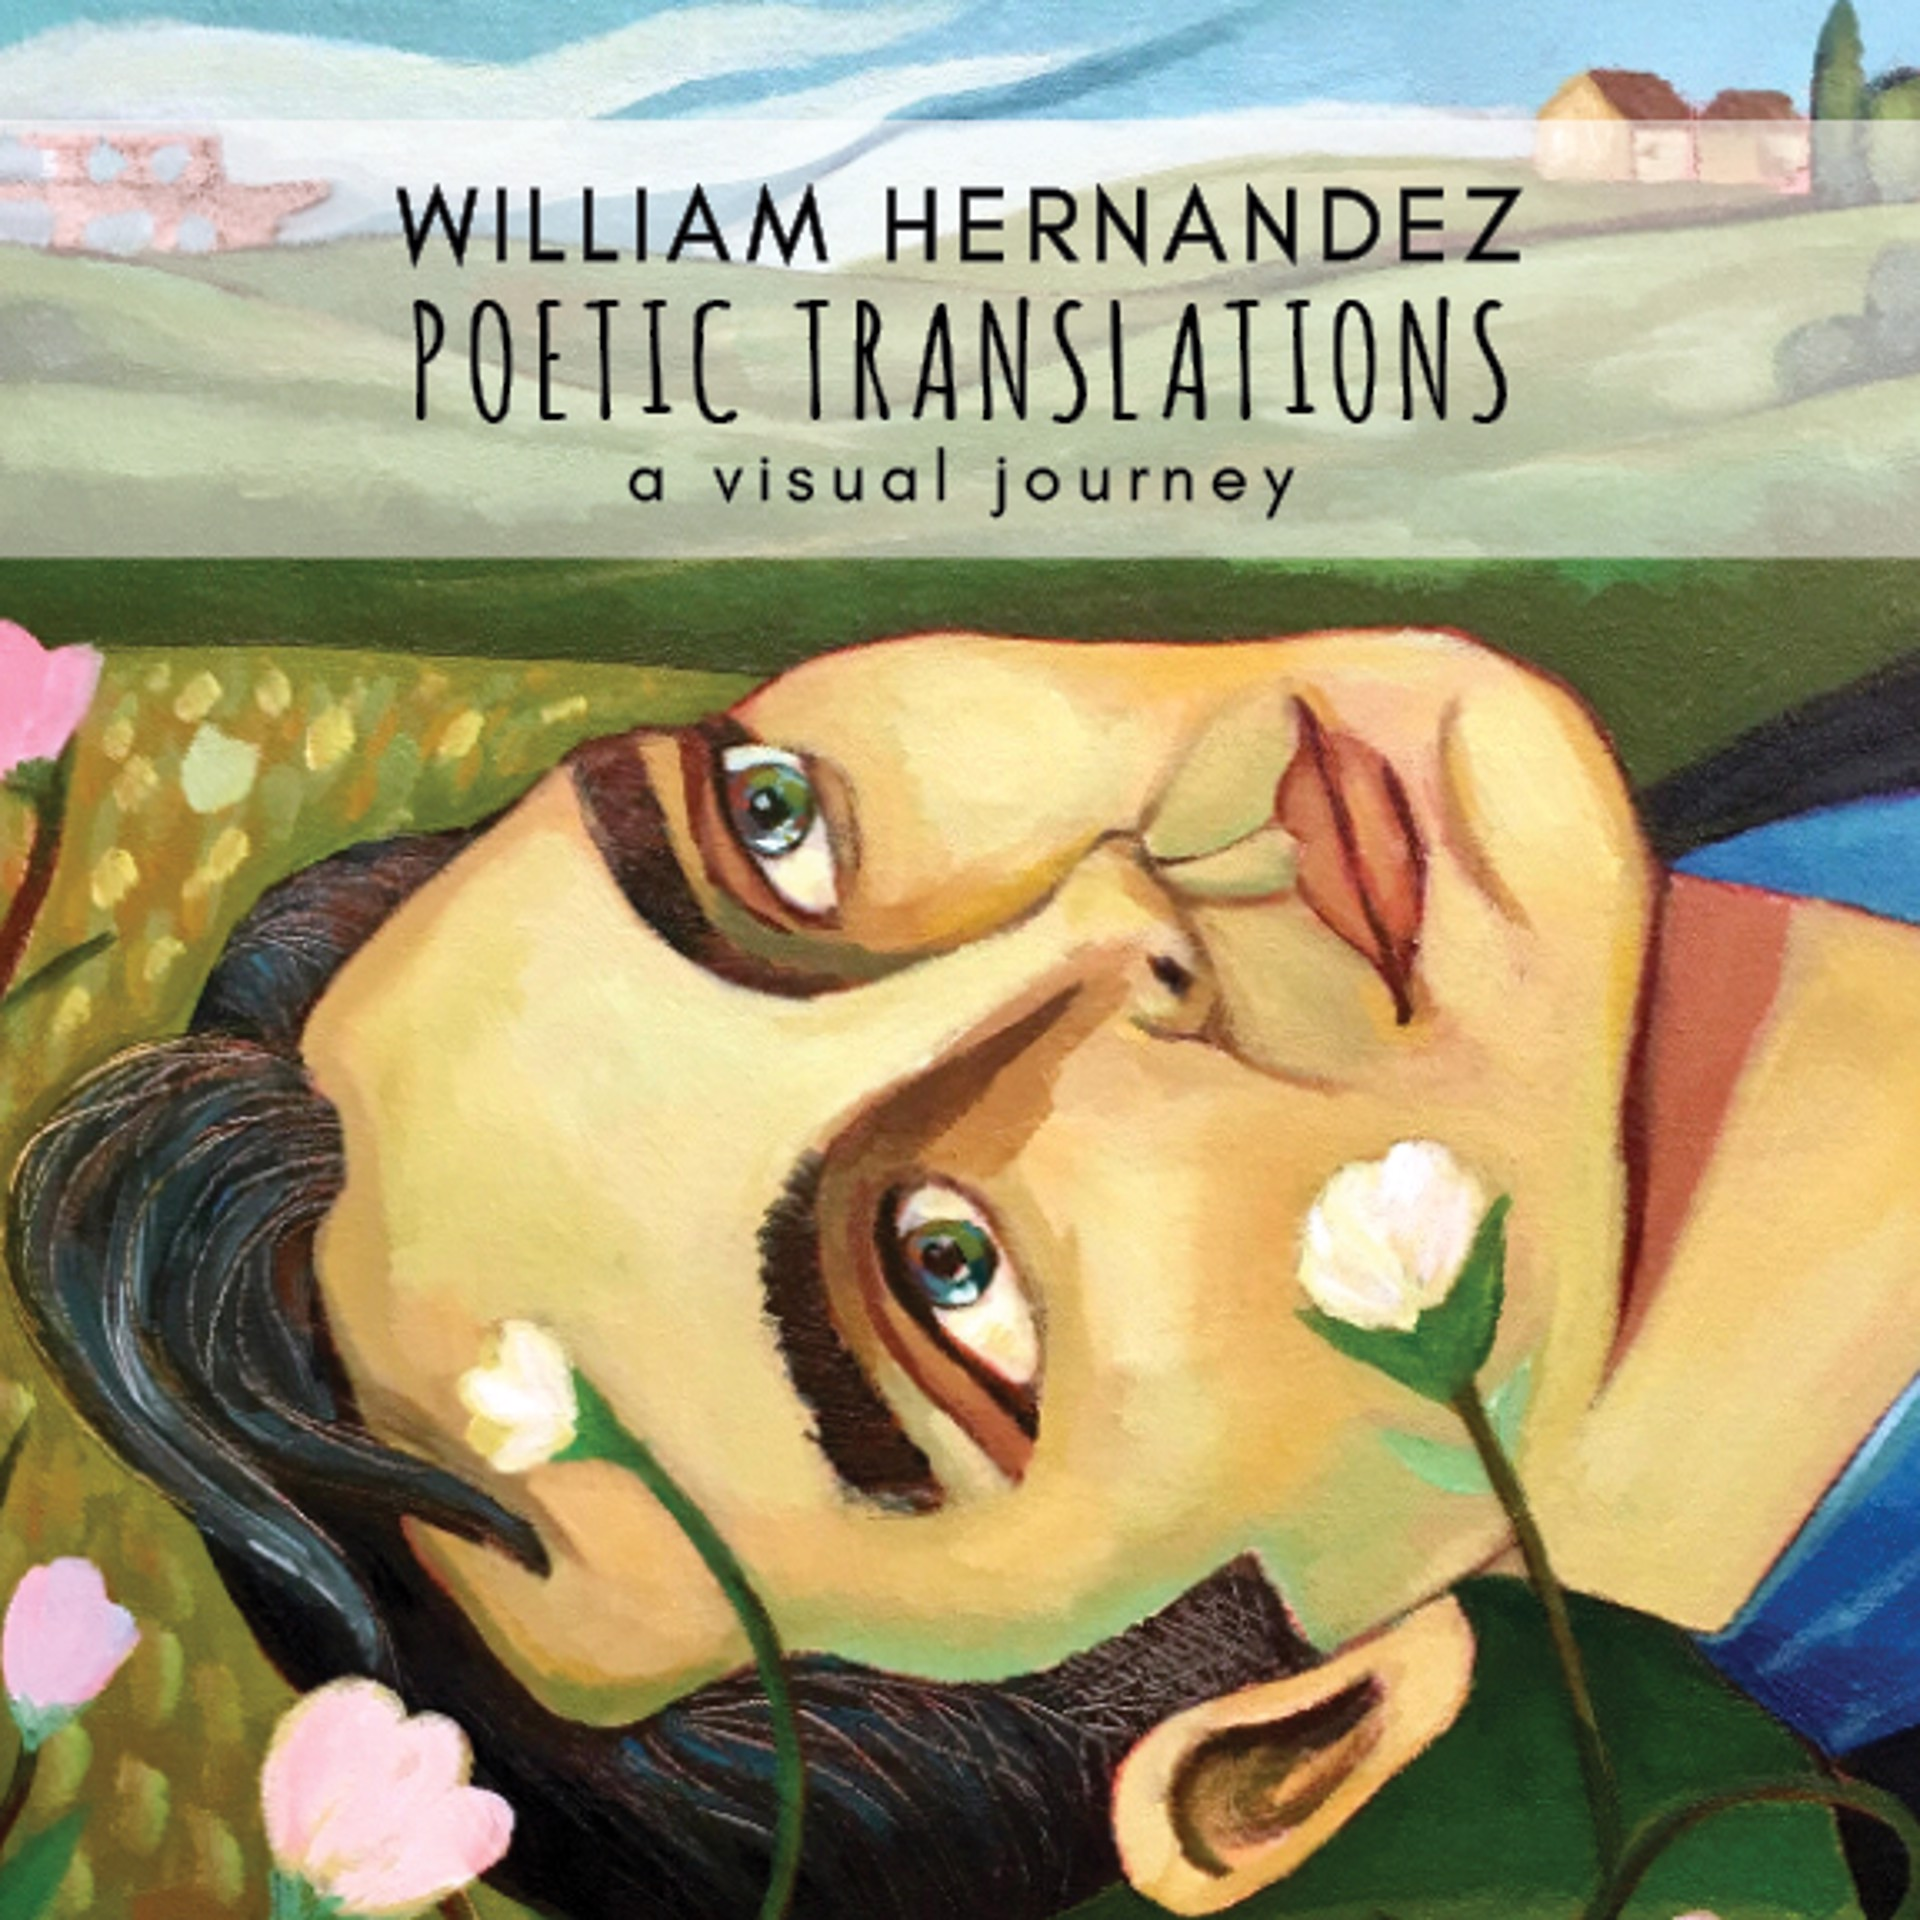 Poetic Translations | exhibition catalog by William Hernandez